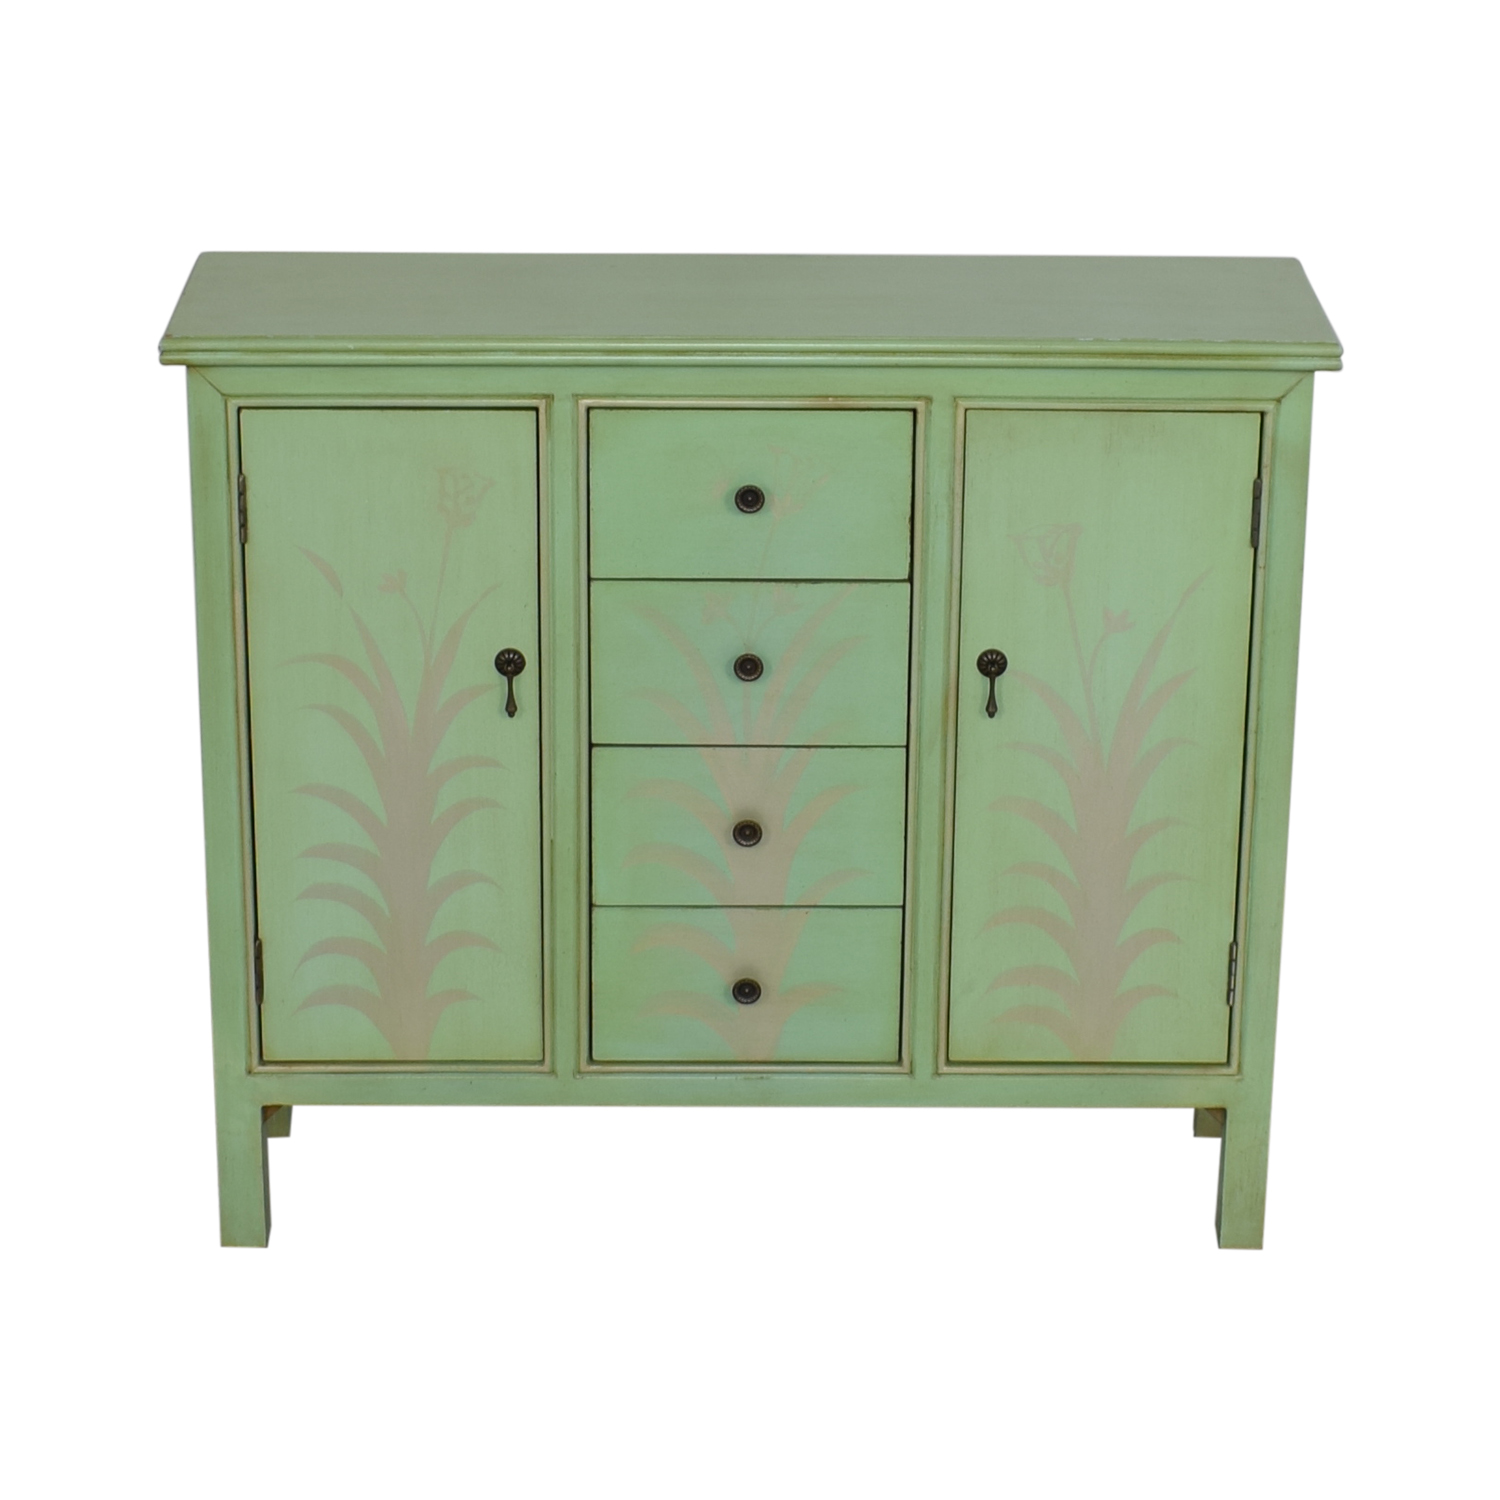 Raymour & Flanigan Mint Green Accent Chest / Storage